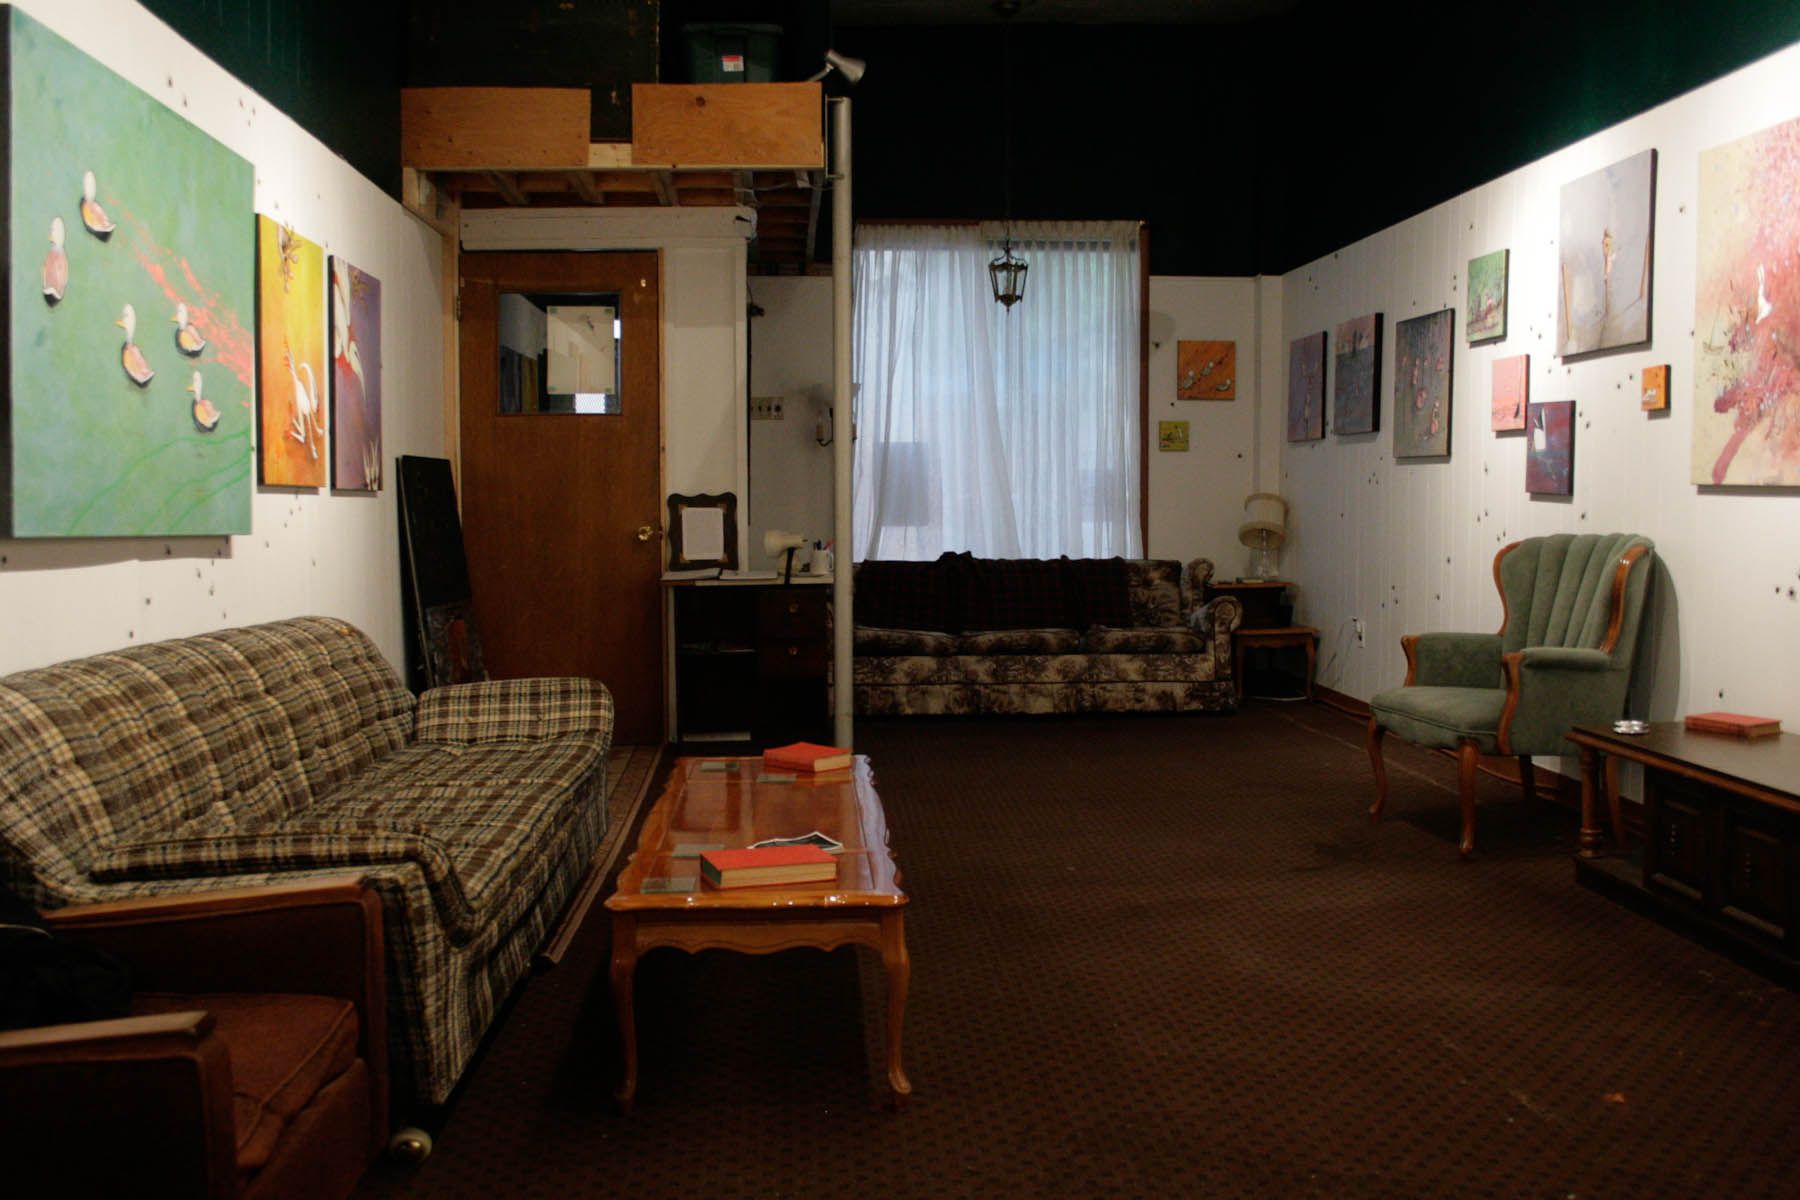 Freud's Bathhouse & Diner